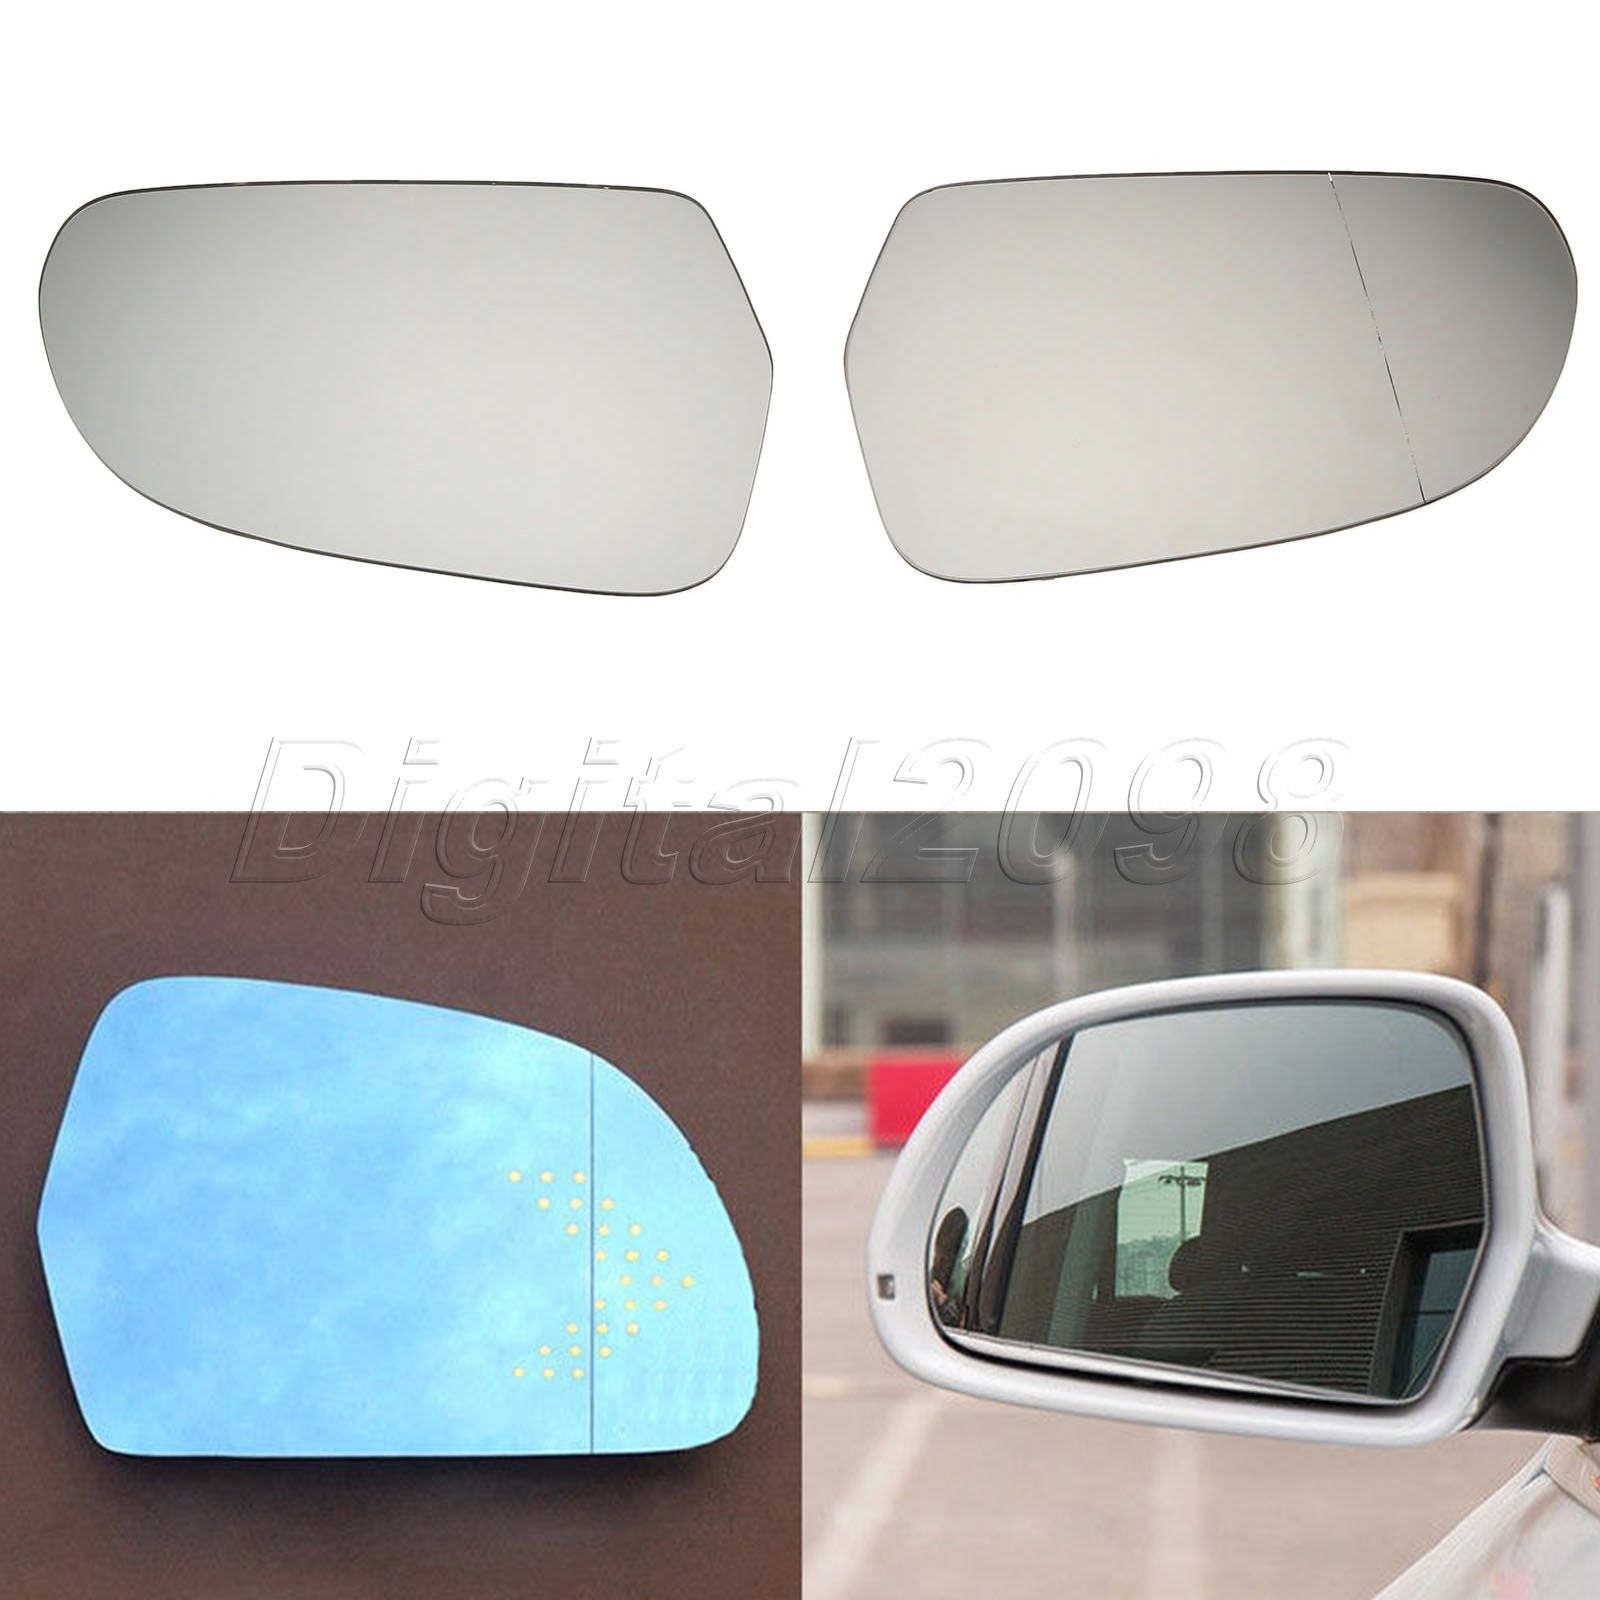 Audi A3 2008-2010 wing door mirror glass for Left passenger side heated